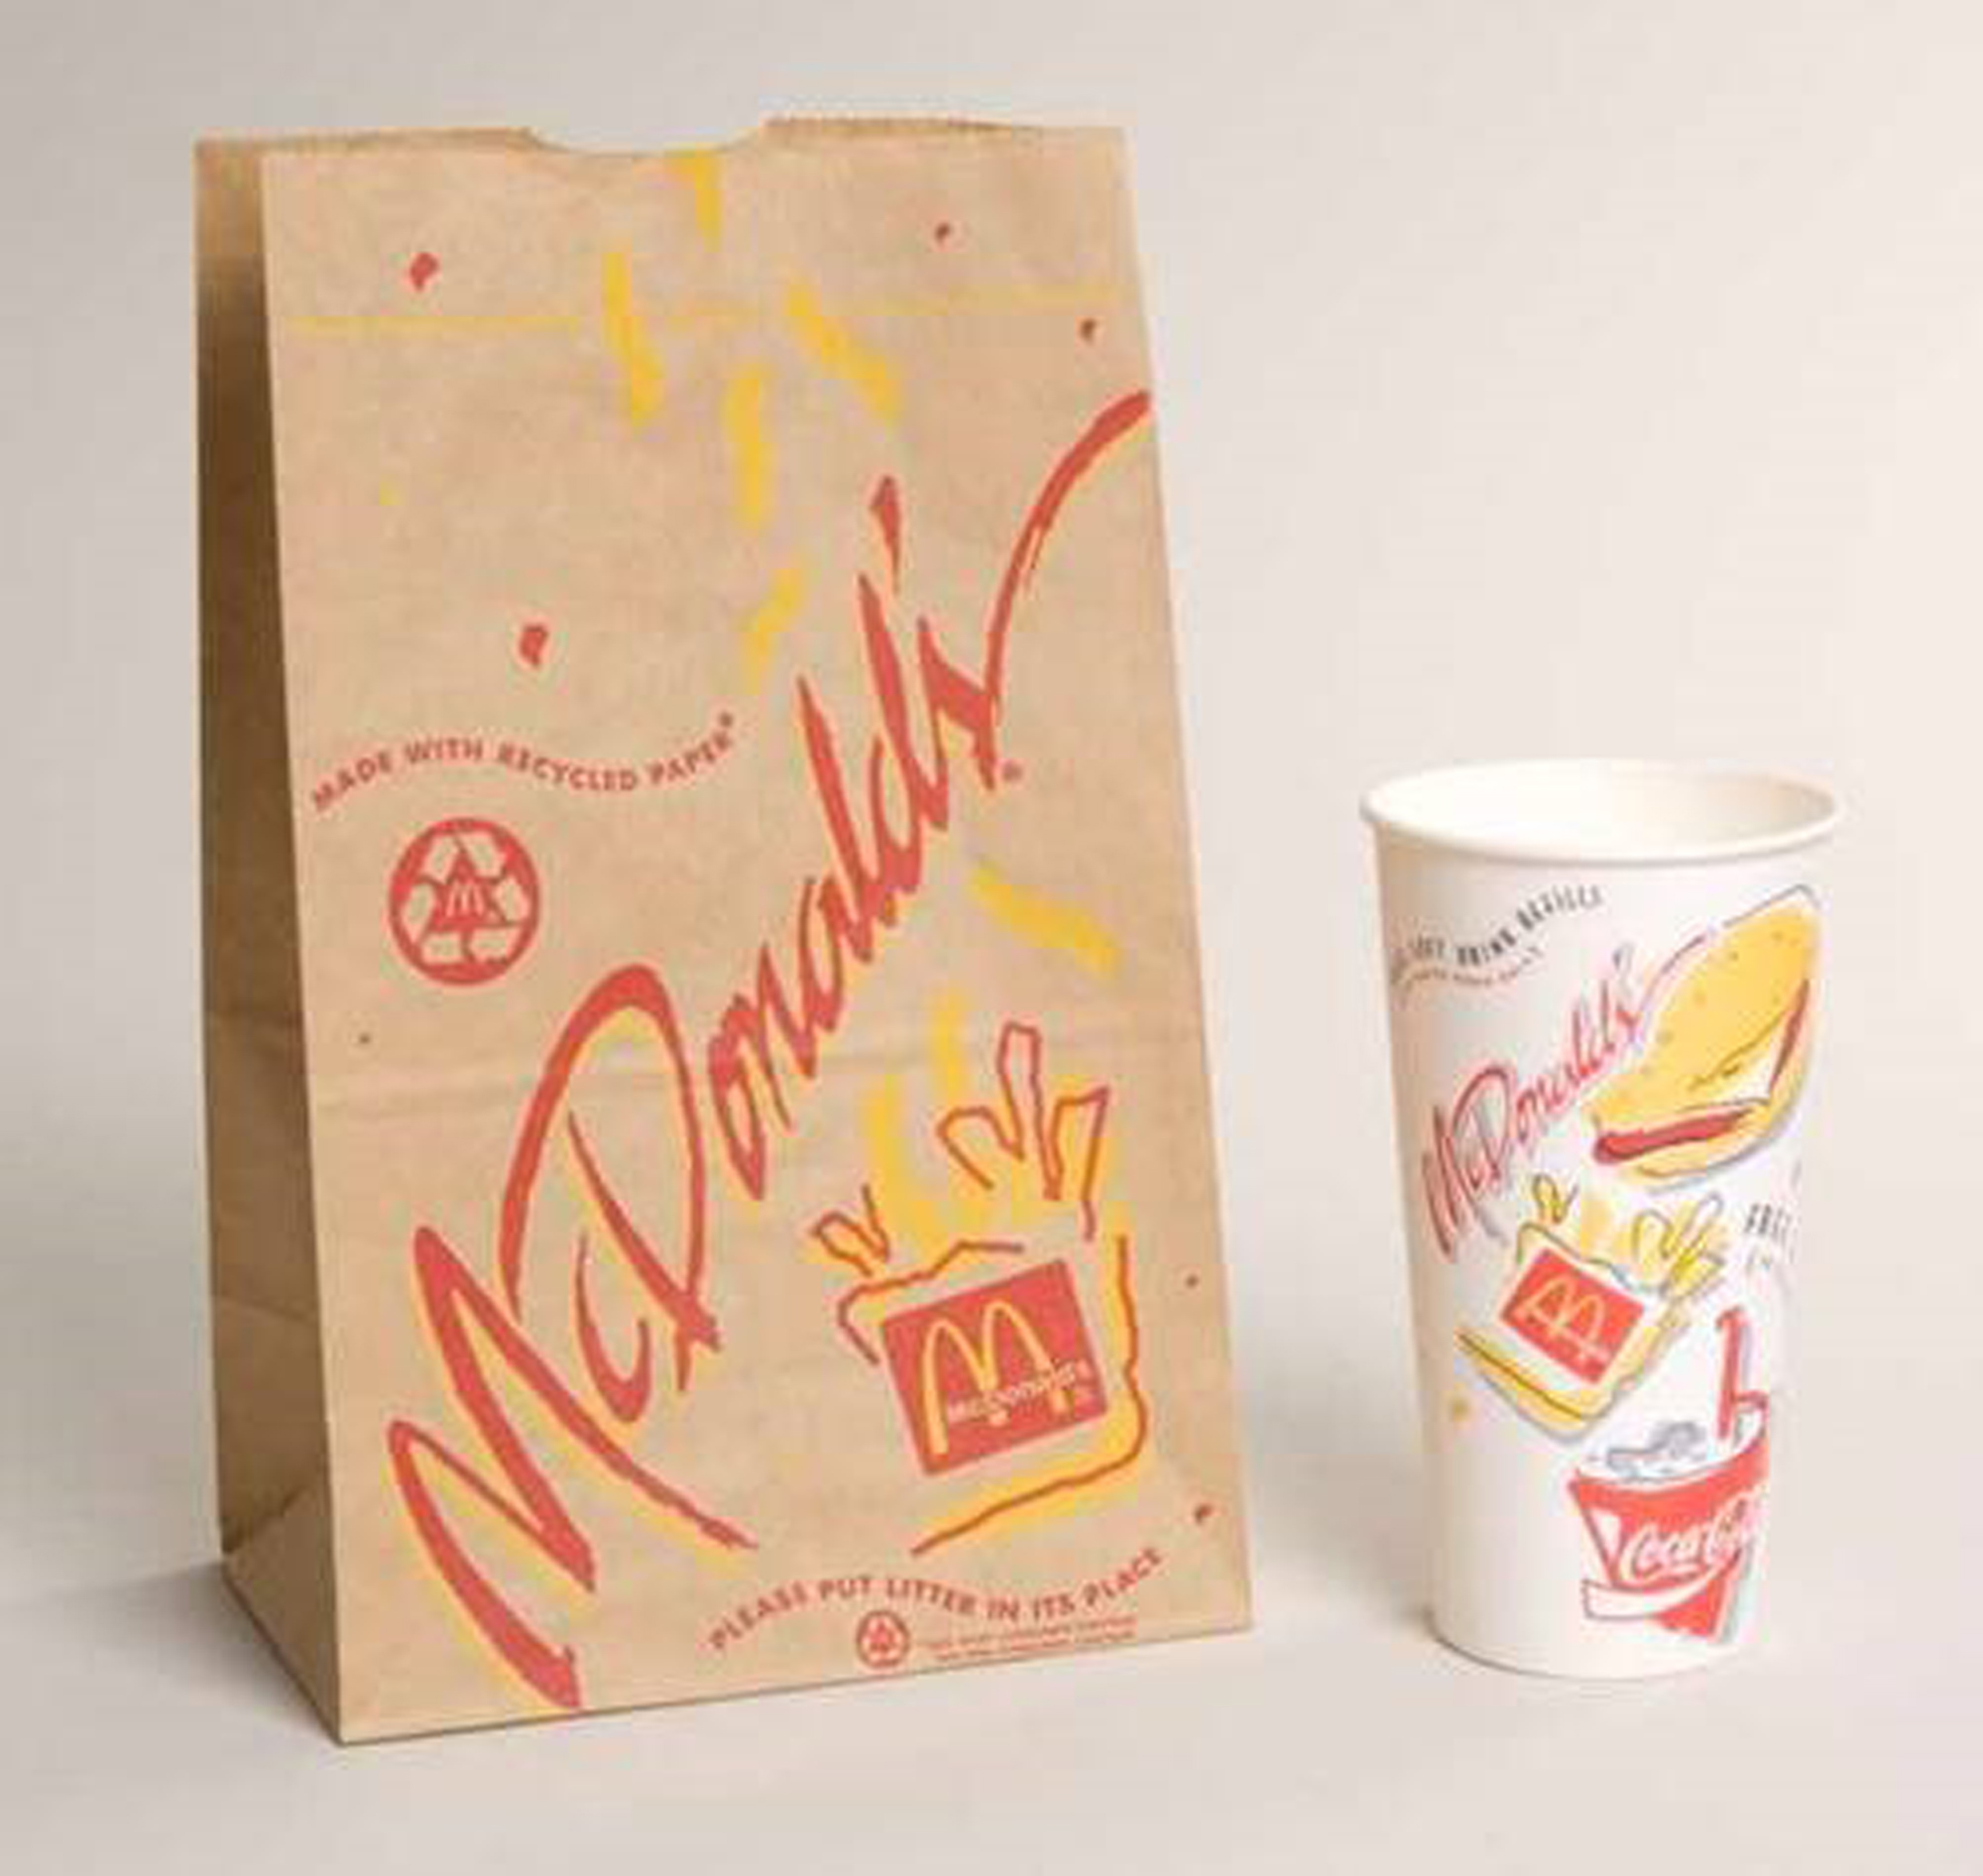 90s illustrated – McDonald's Packaging